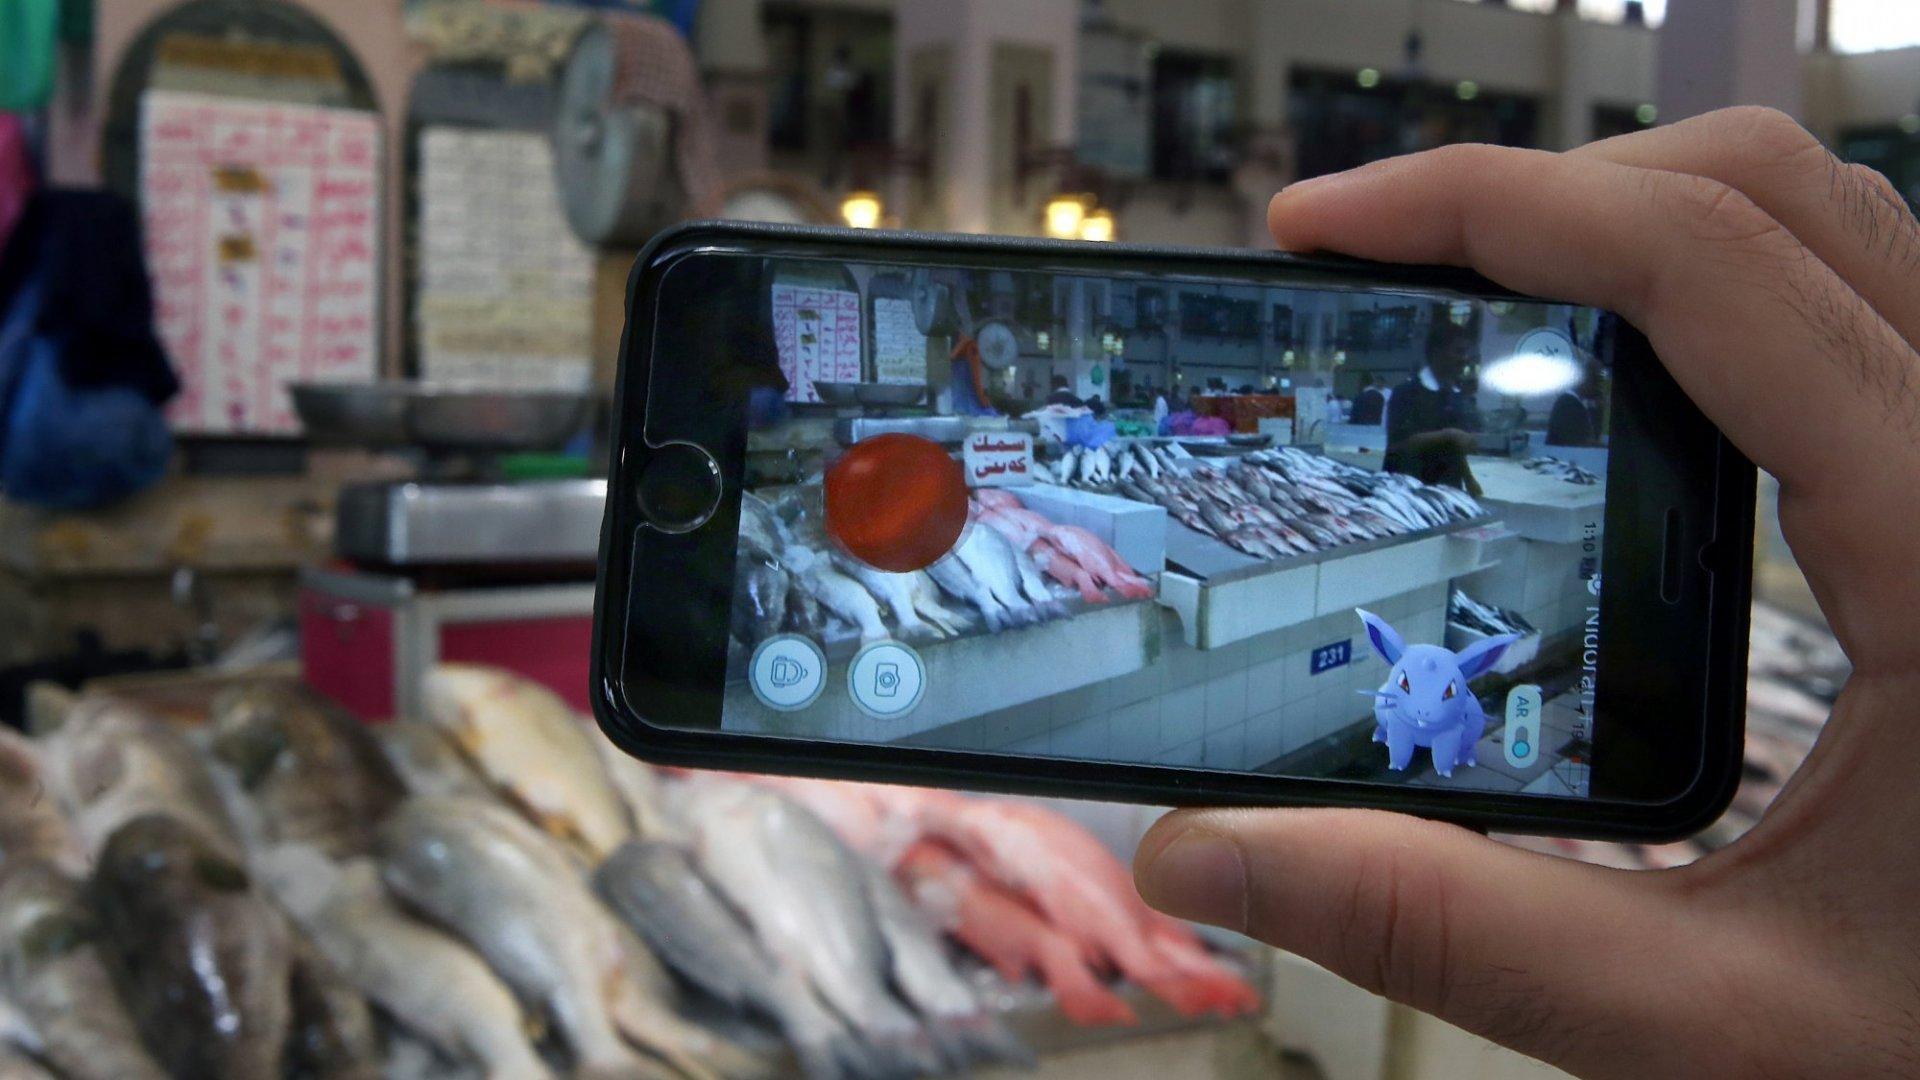 5 Reasons to Join the Pokemon Go Craze